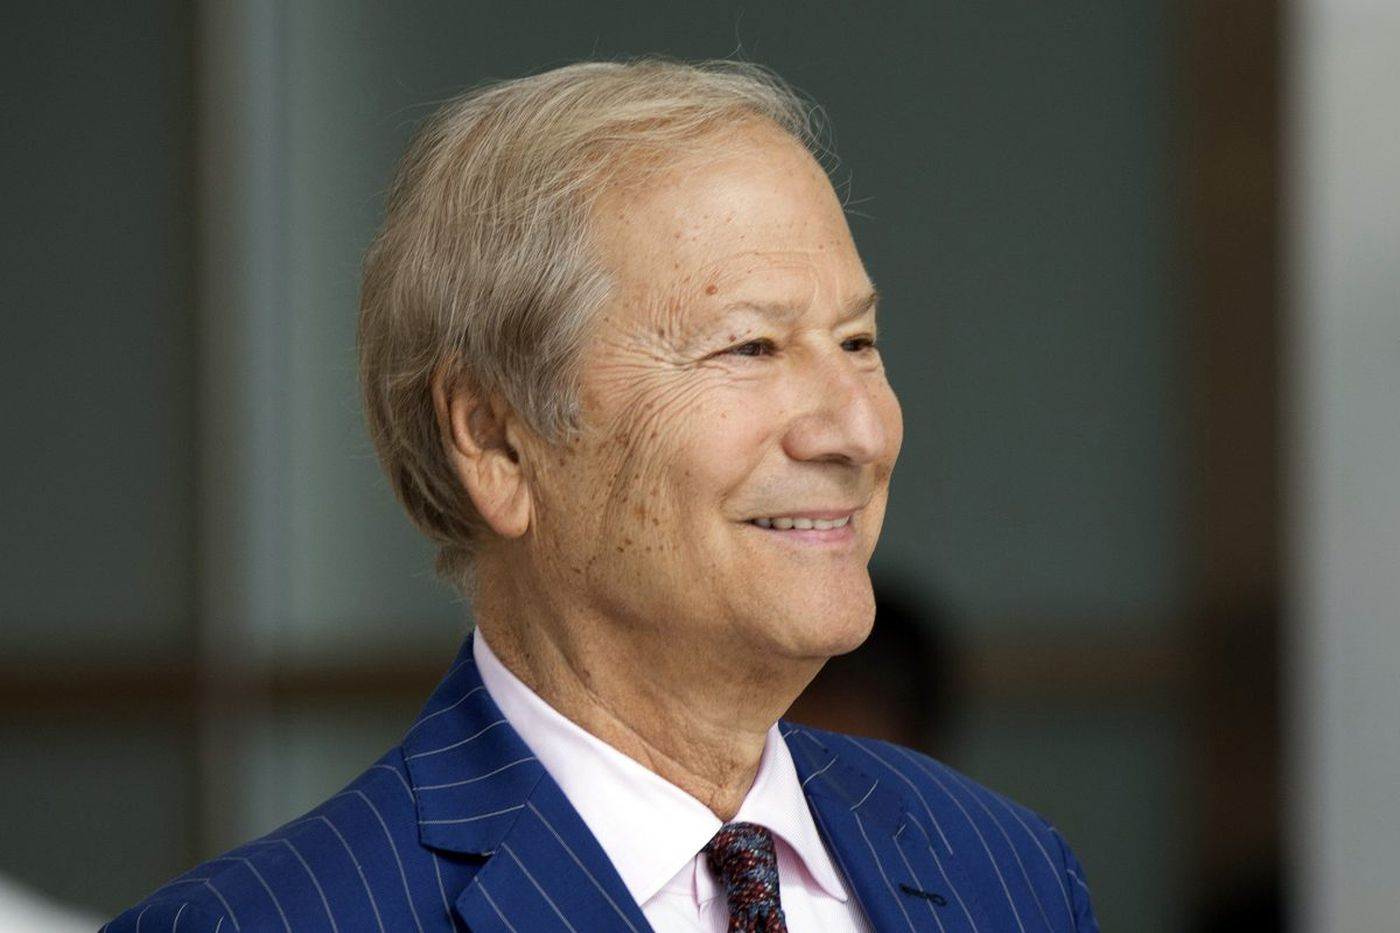 Lewis Katz, of South Jersey, left a permanent mark on business, media, and medicine